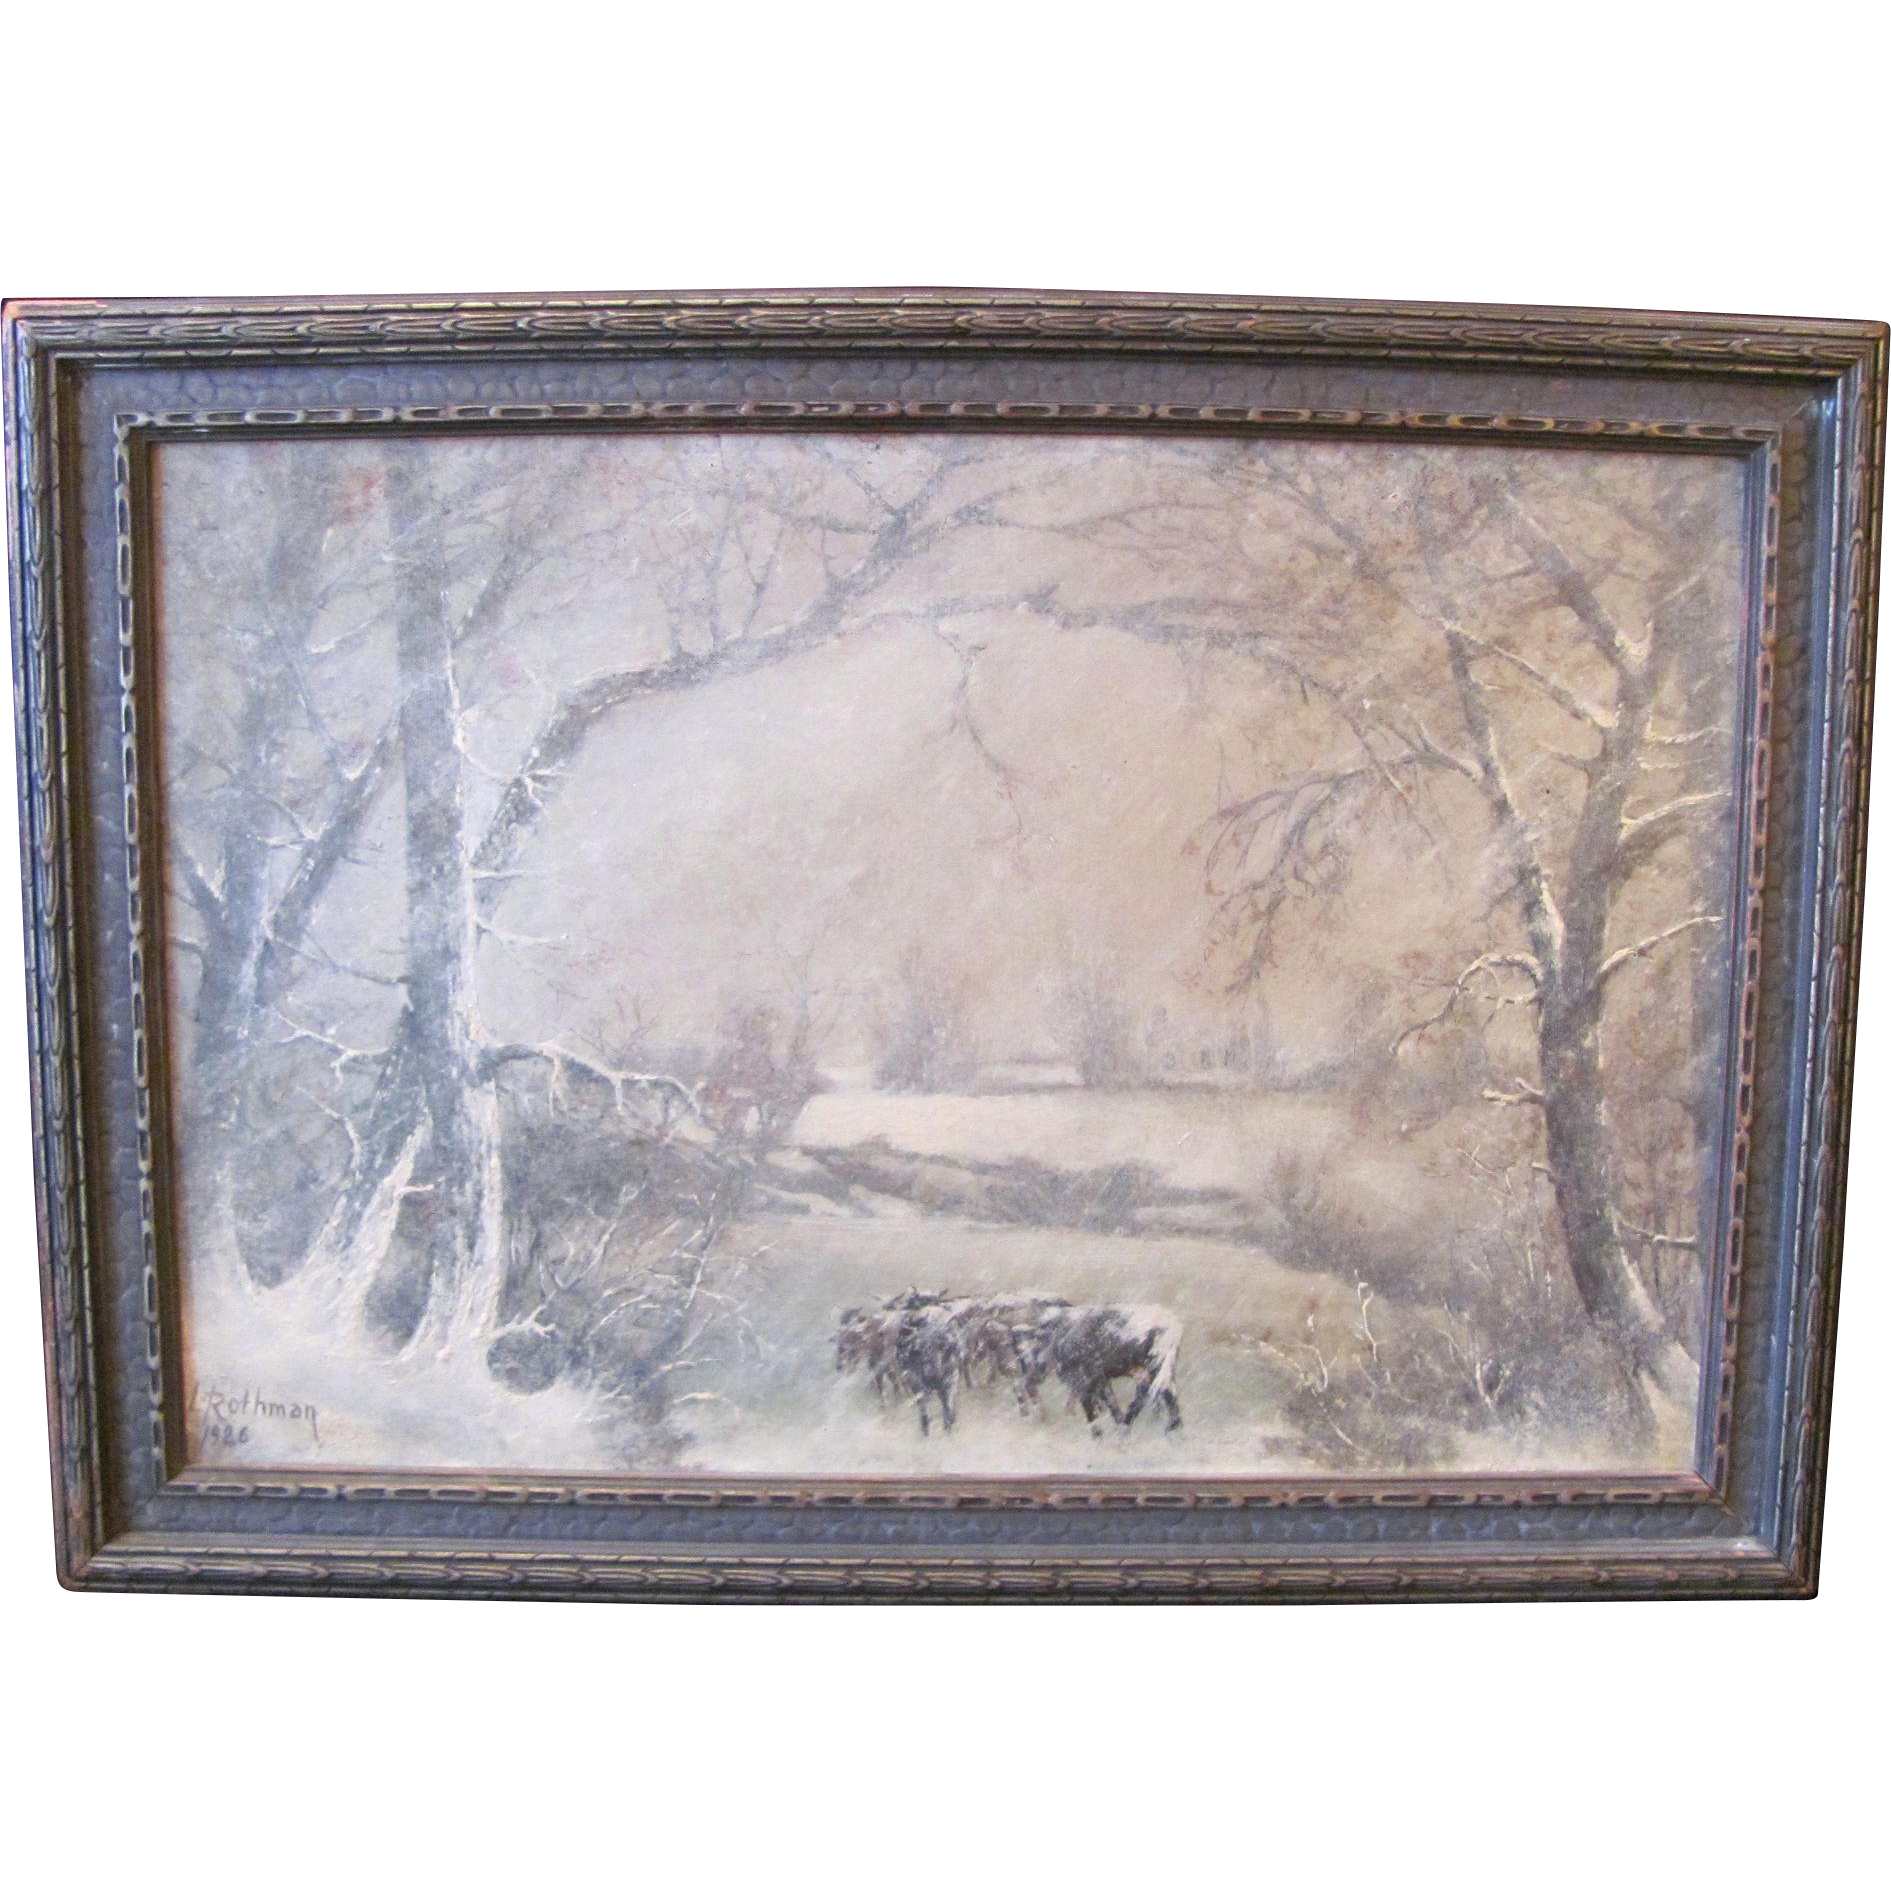 American Midwest Oil on Board Painting Signed L. Rothman 1926